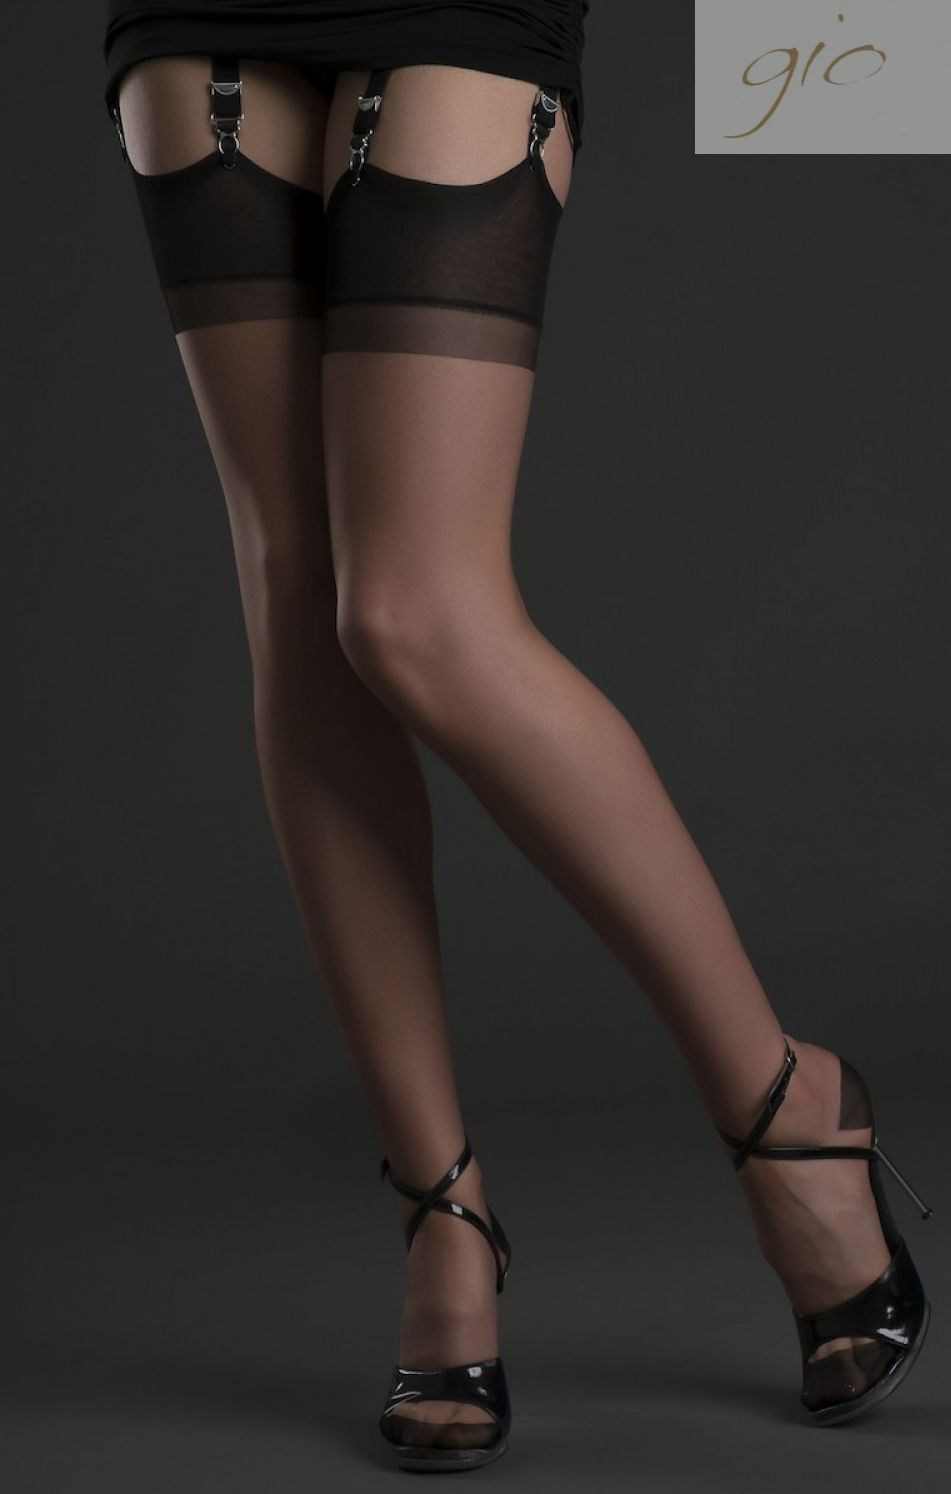 Denier Nylon Stockings Are